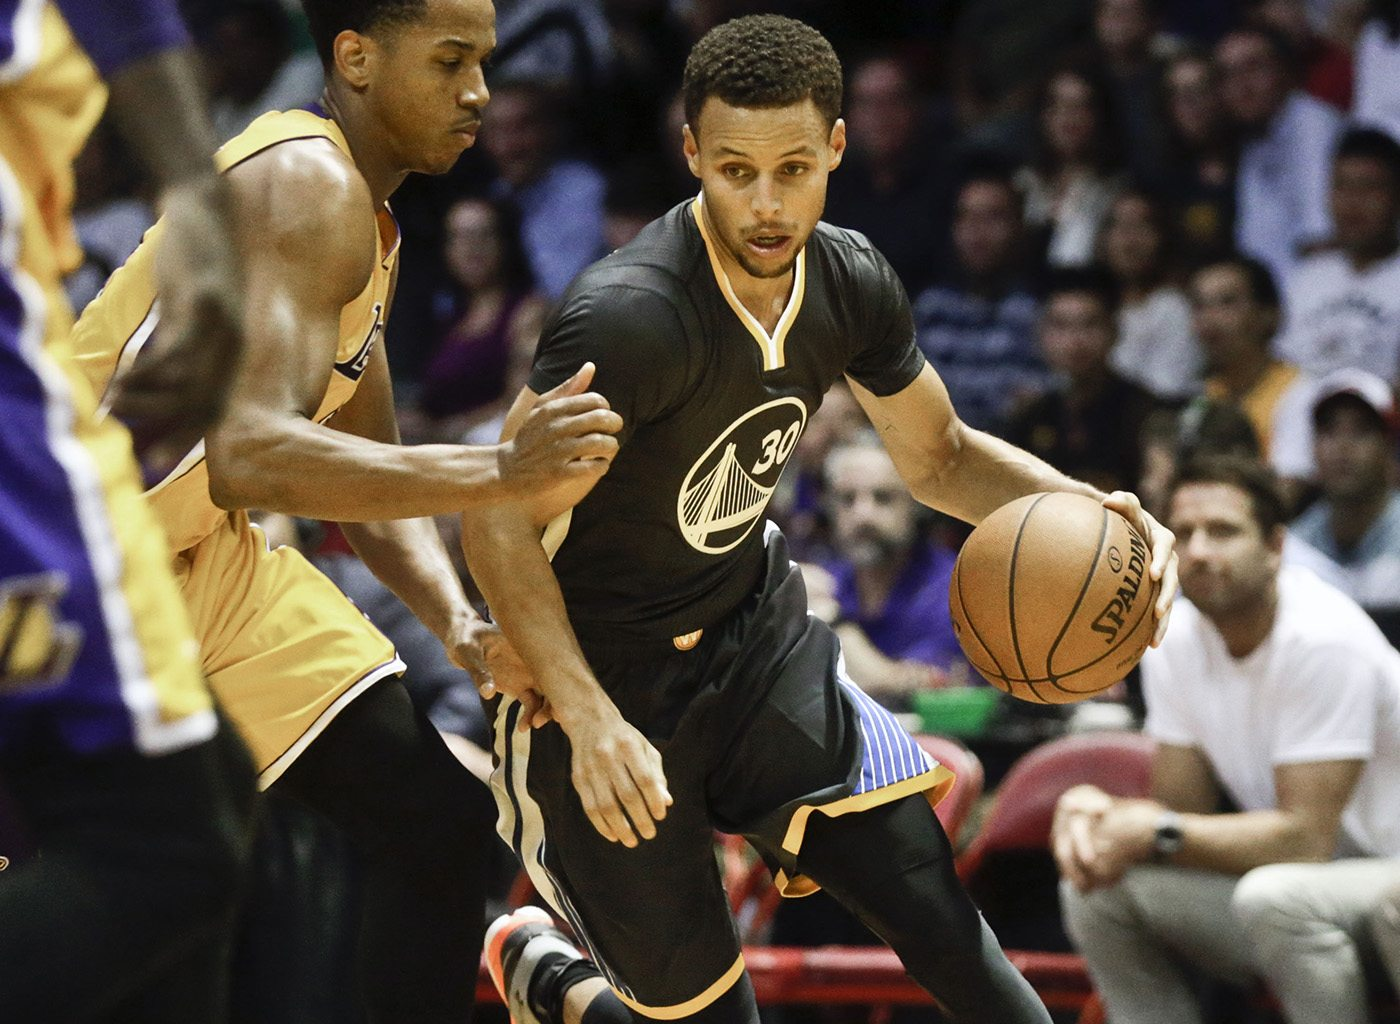 Fresh off an NBA championship, reigning MVP Stephen Curry and the Golden State Warriors will have to put together another special season — and stay healthy — if they hope to defend their title.  (AP Photo/Lenny Ignelzi)